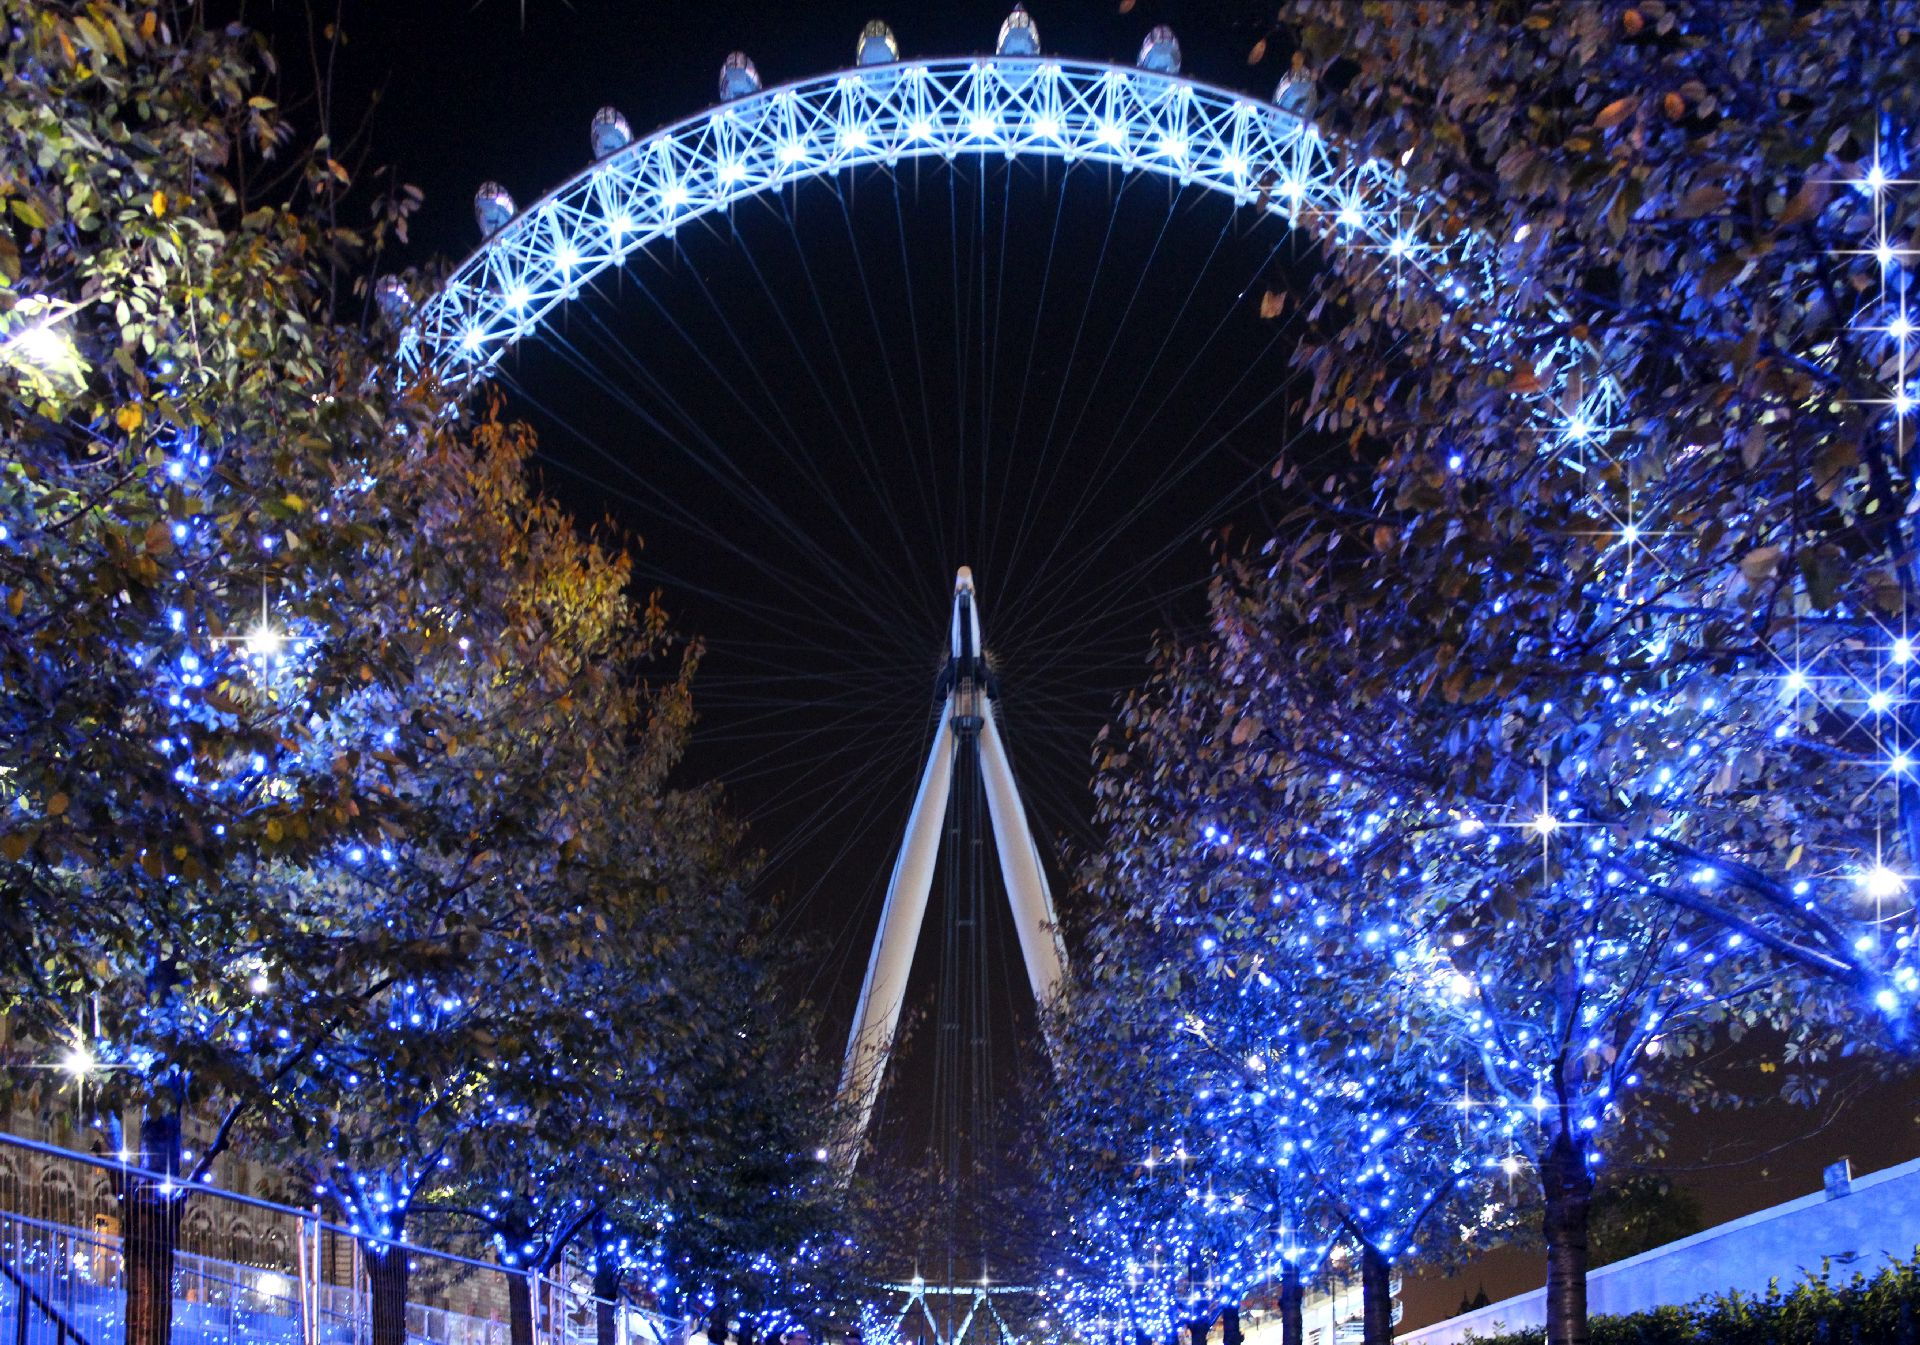 47 London Eye Hd Wallpaper On Wallpapersafari